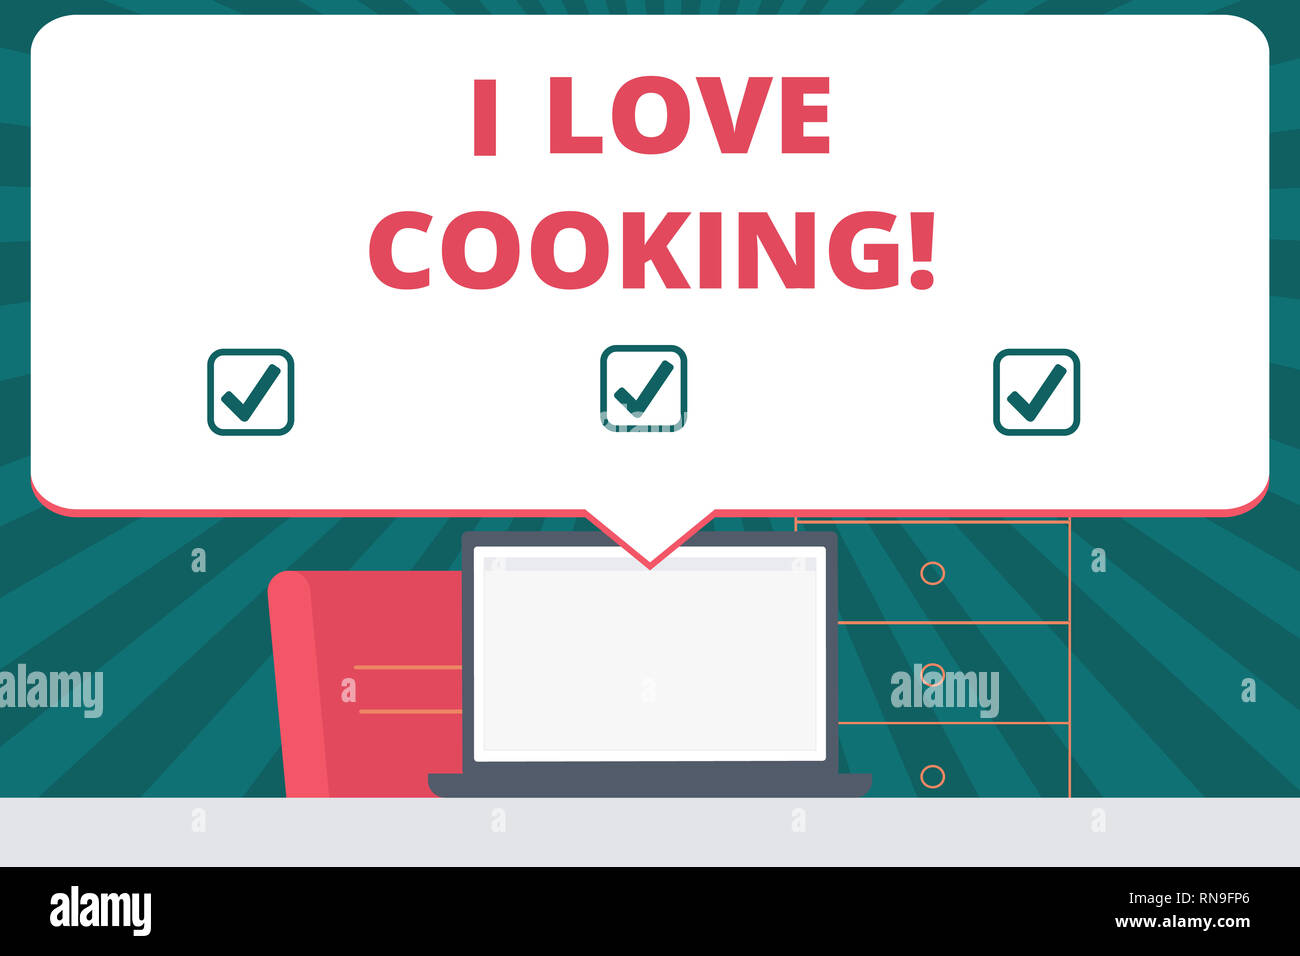 Handwriting Text Writing I Love Cooking Concept Meaning Having Affection For Culinary Arts Prepare Foods And Desserts Stock Photo Alamy